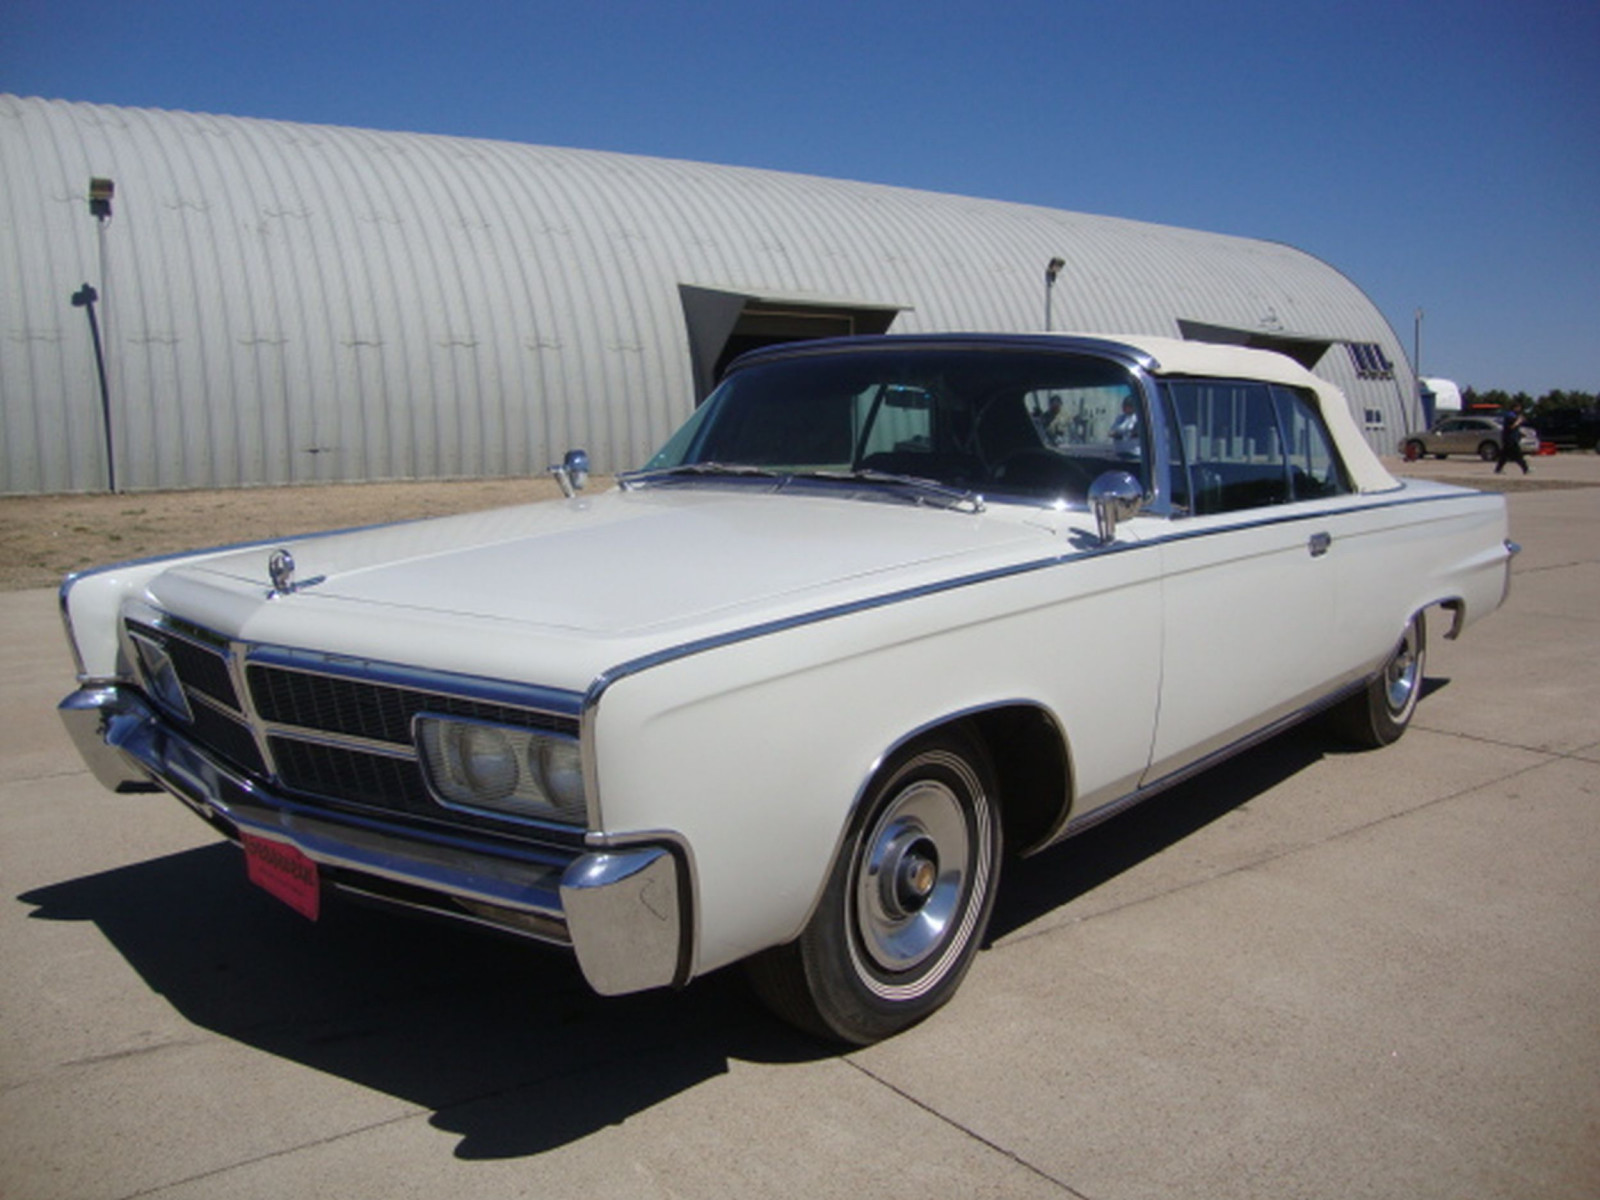 1965 Chrysler Imperial Crown Convertible - Image 13